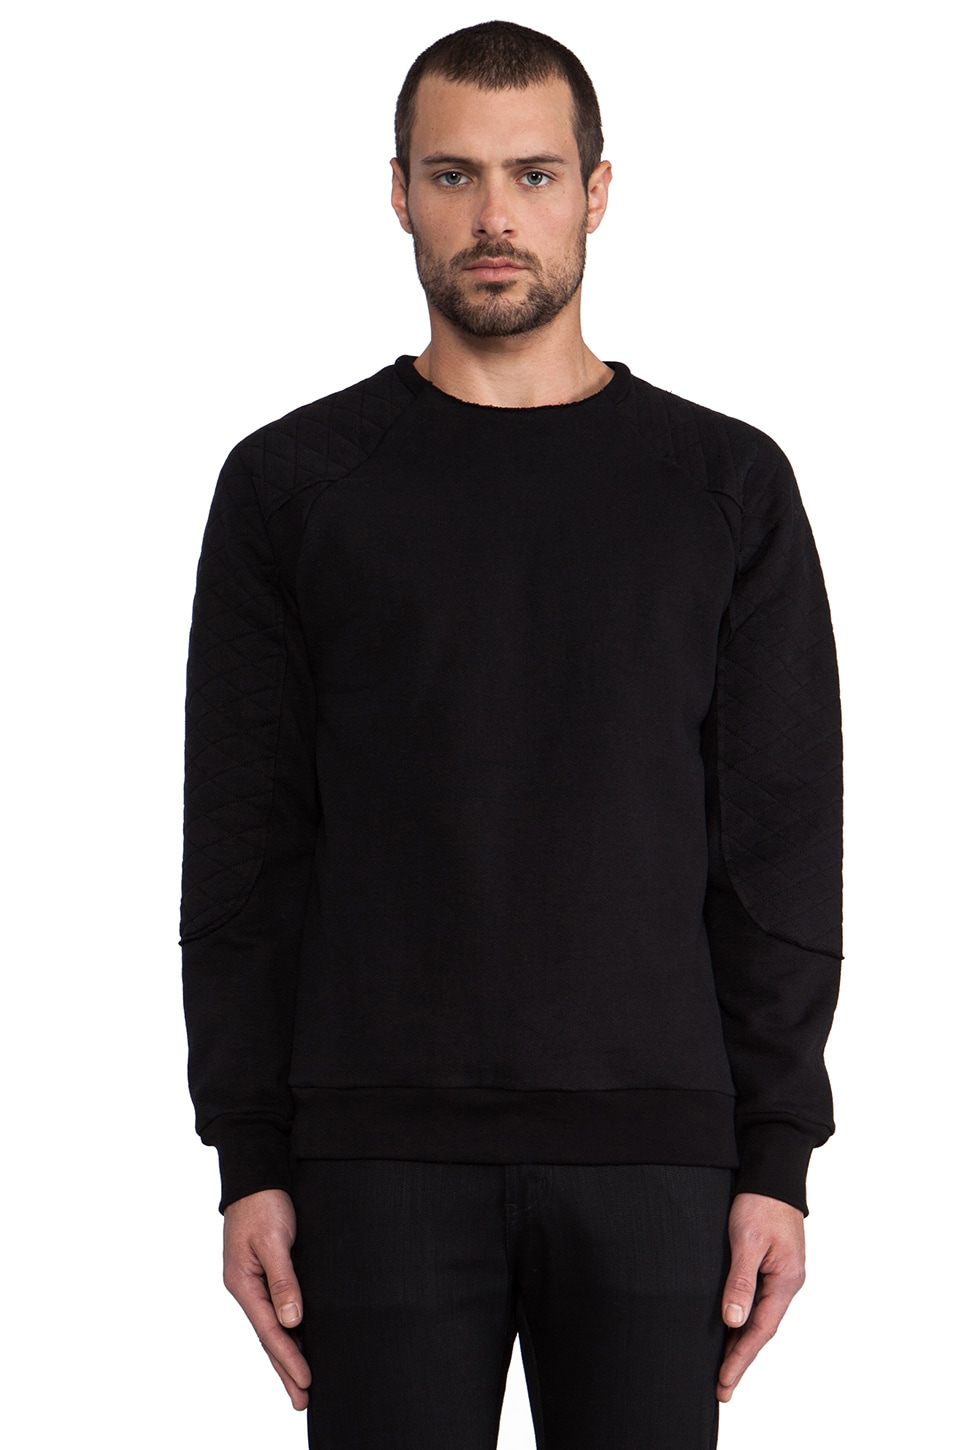 Drifter Corbin Sweatshirt in Black